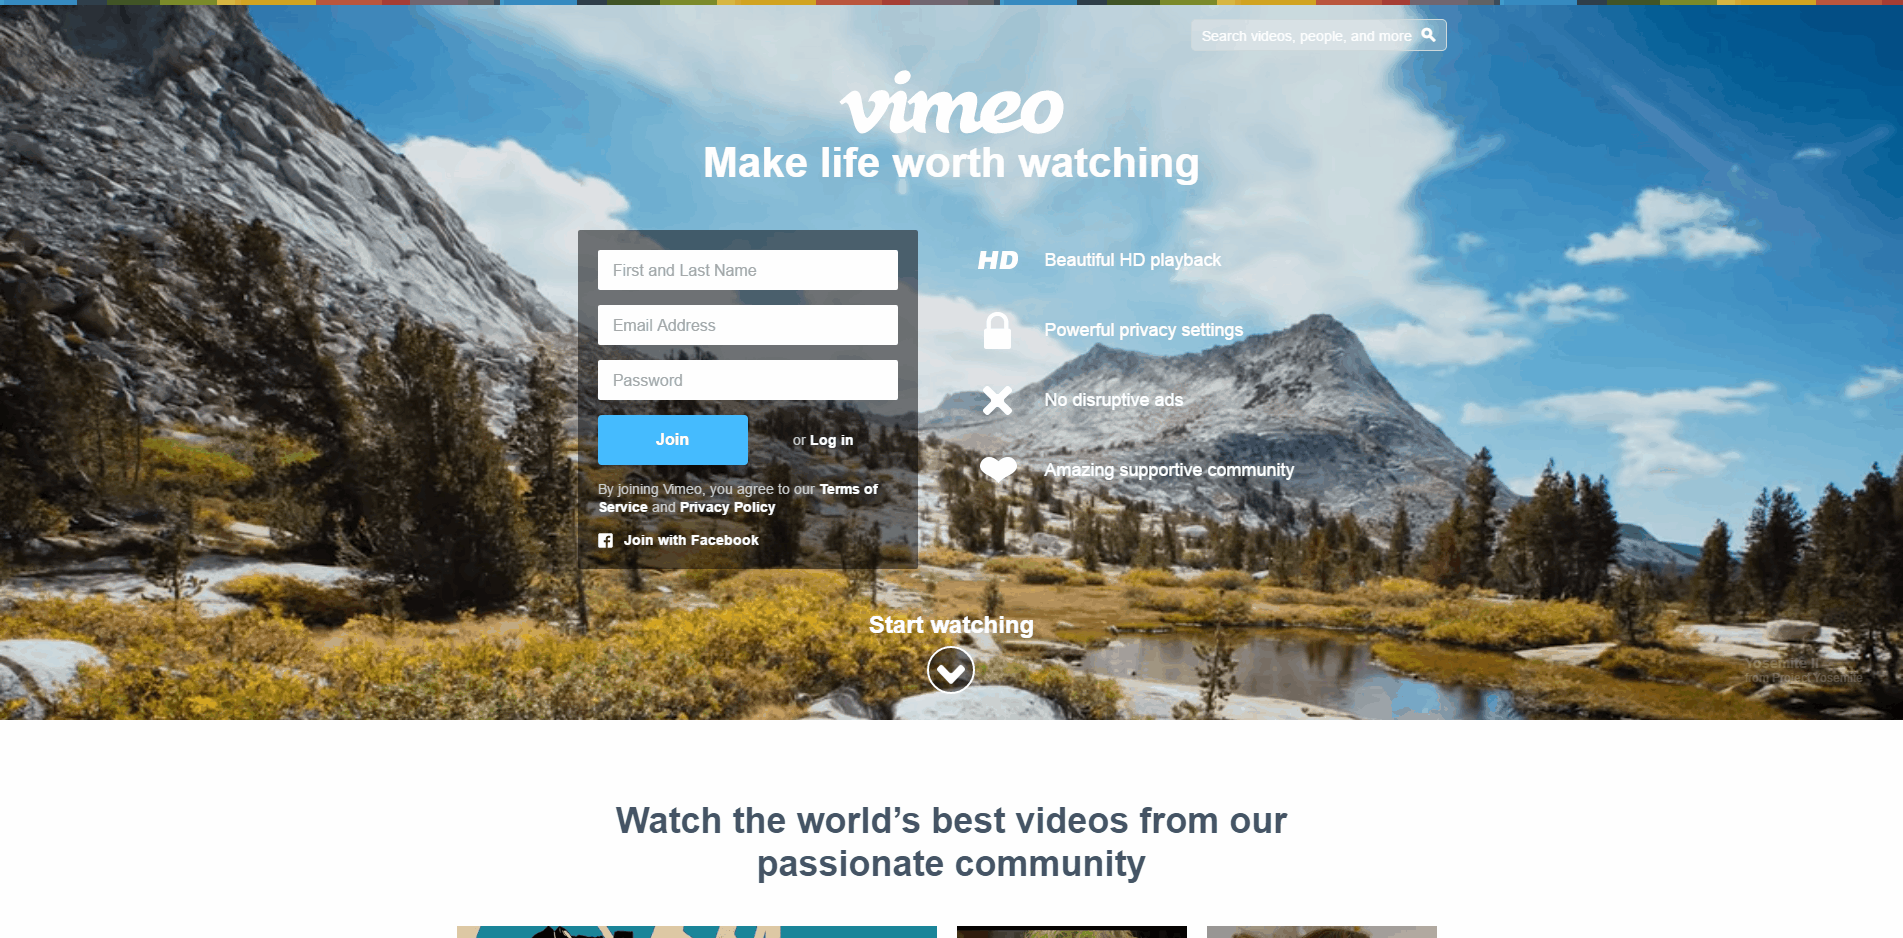 Vimeo Watch upload and share HD videos with no ads